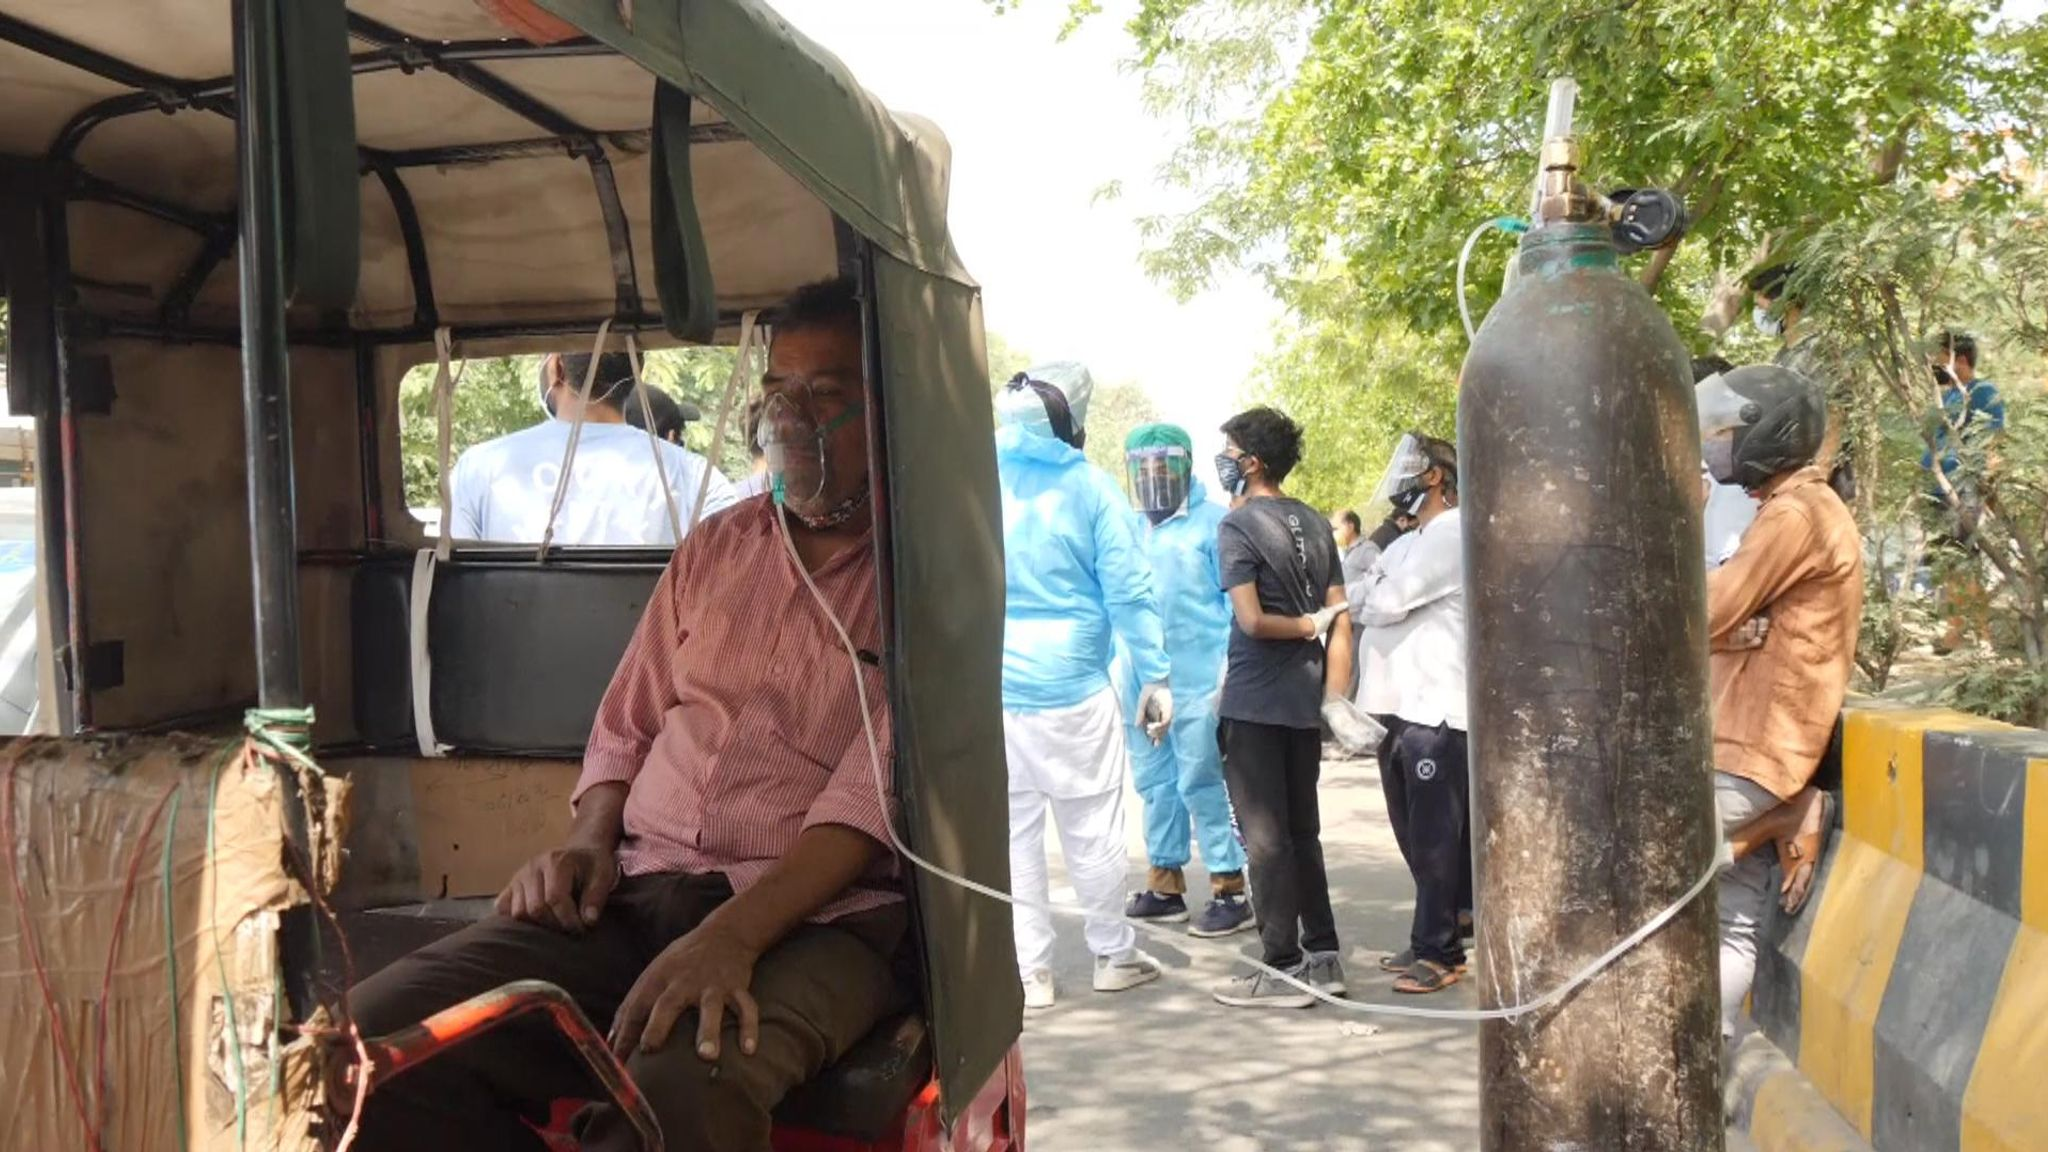 COVID-19: People Left To Beg And Barter For Air As India's Coronavirus Crisis Escalates